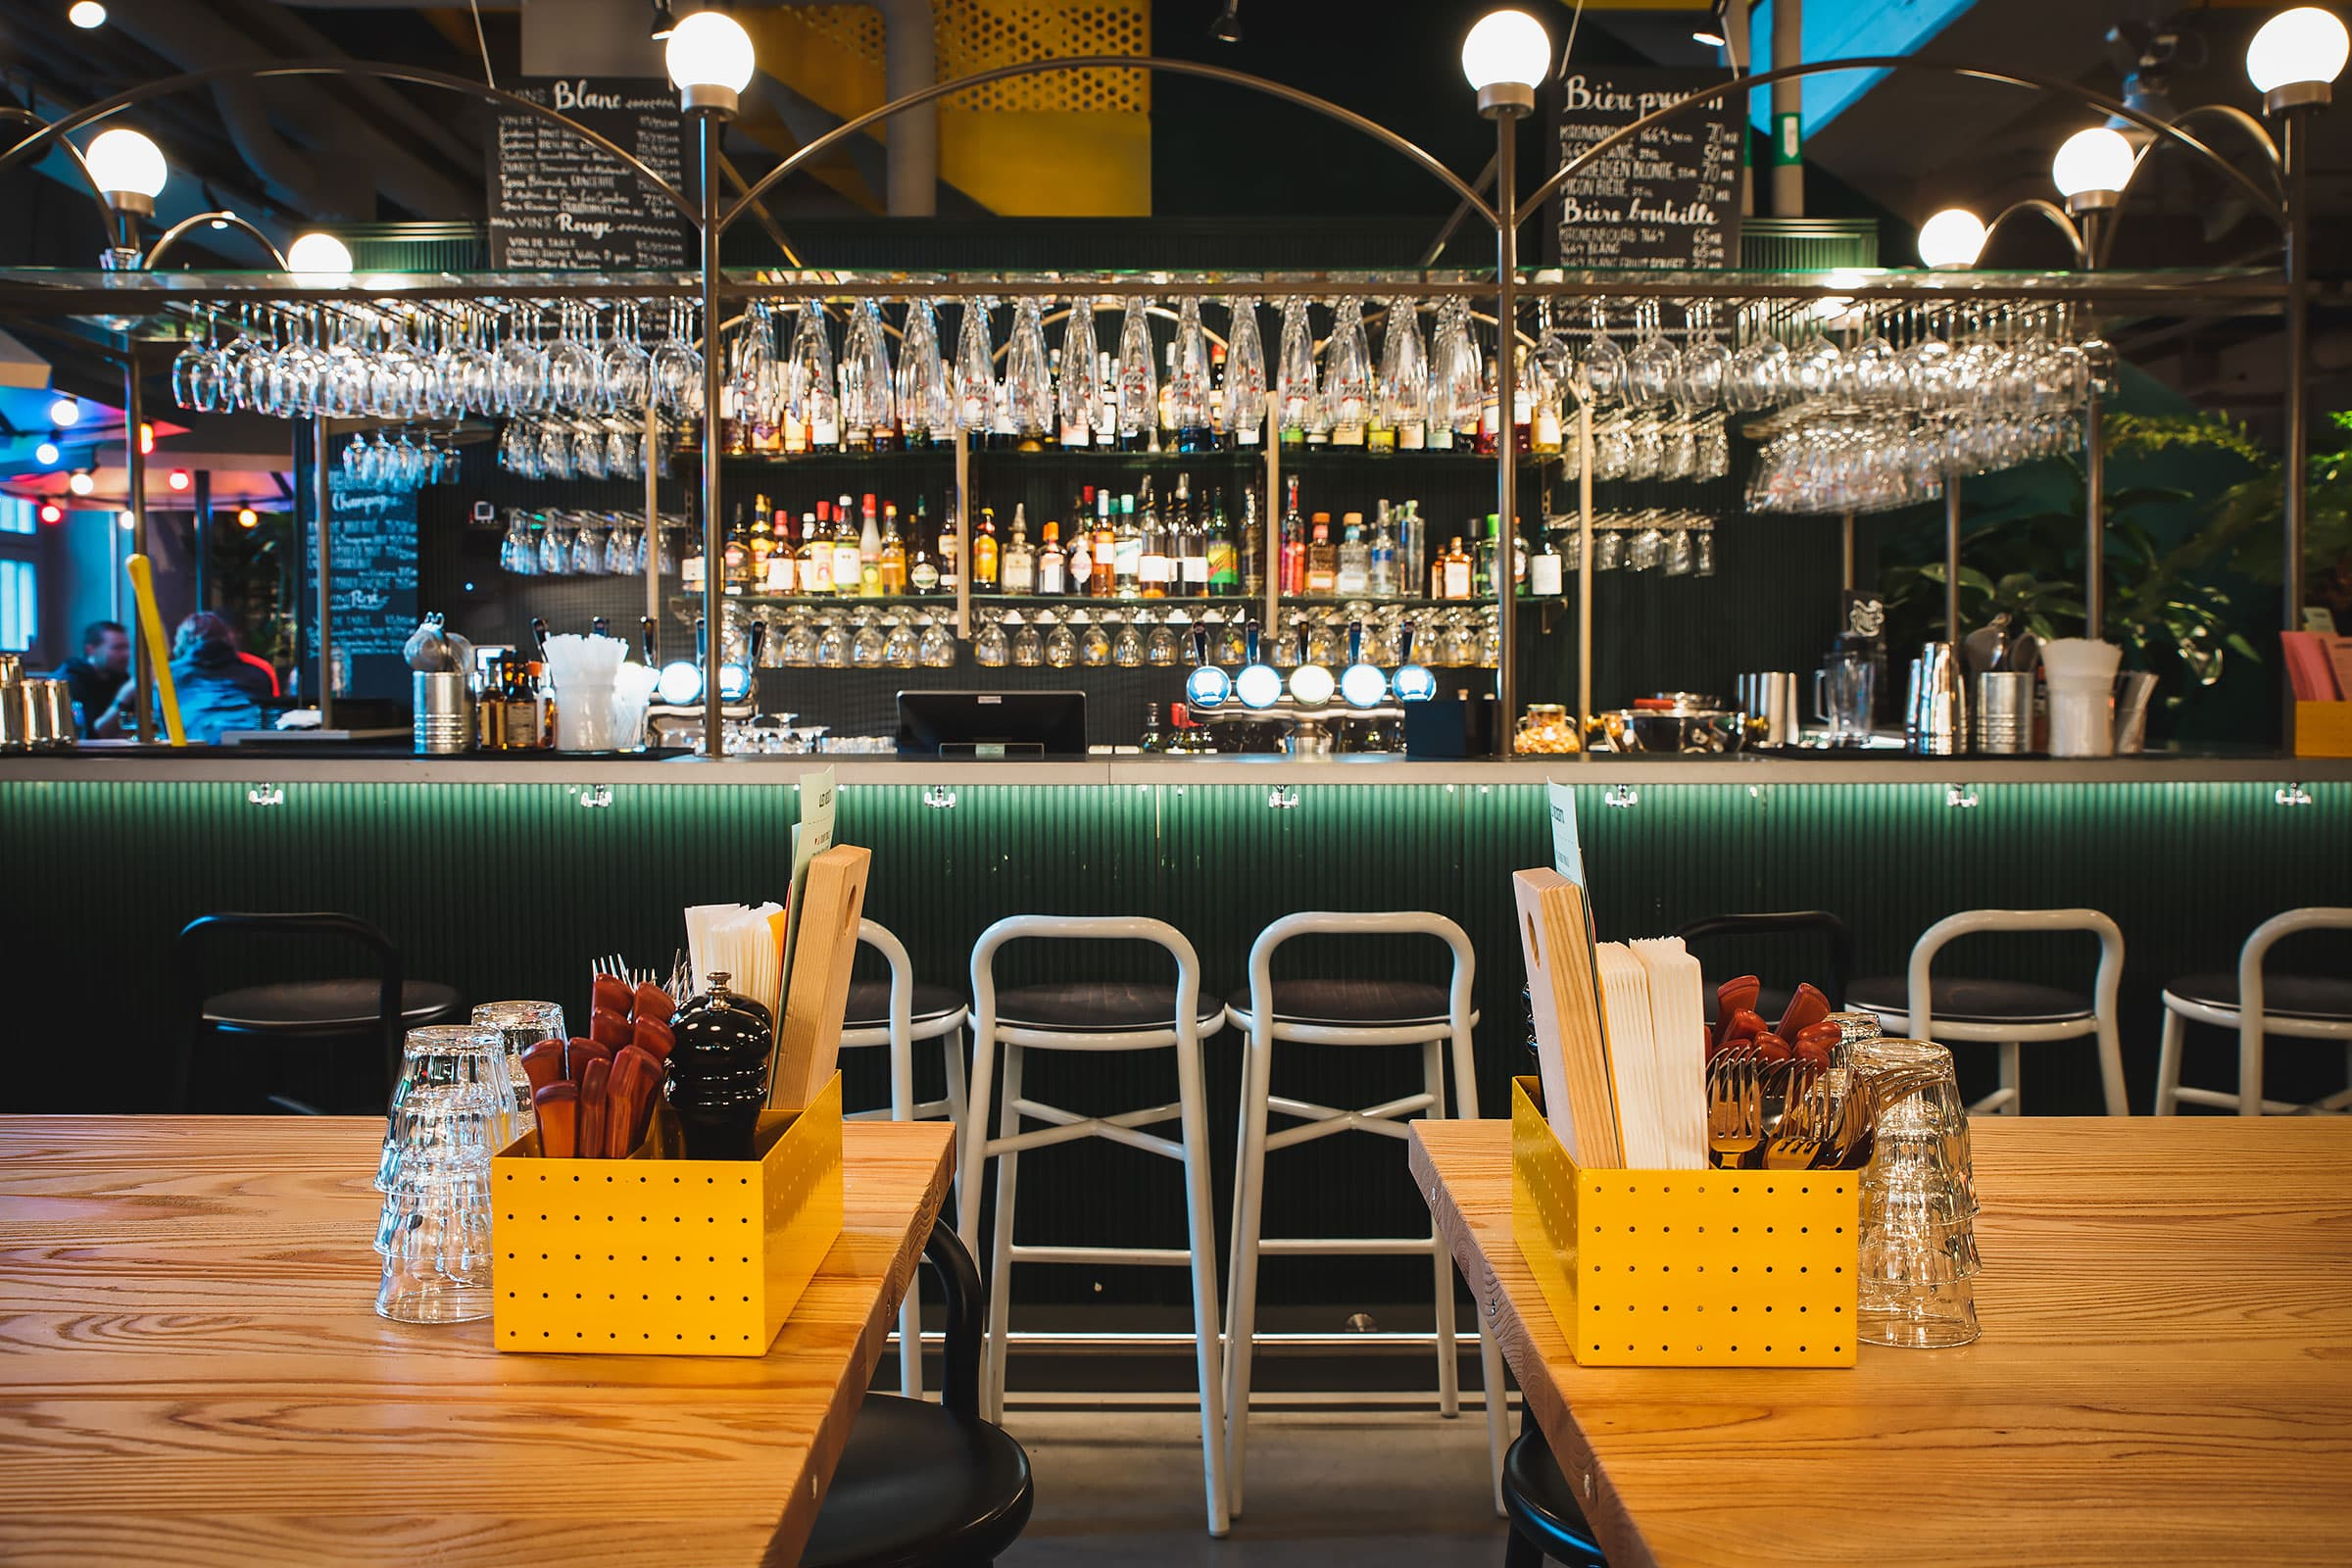 Stockholm's best out-of-town bars